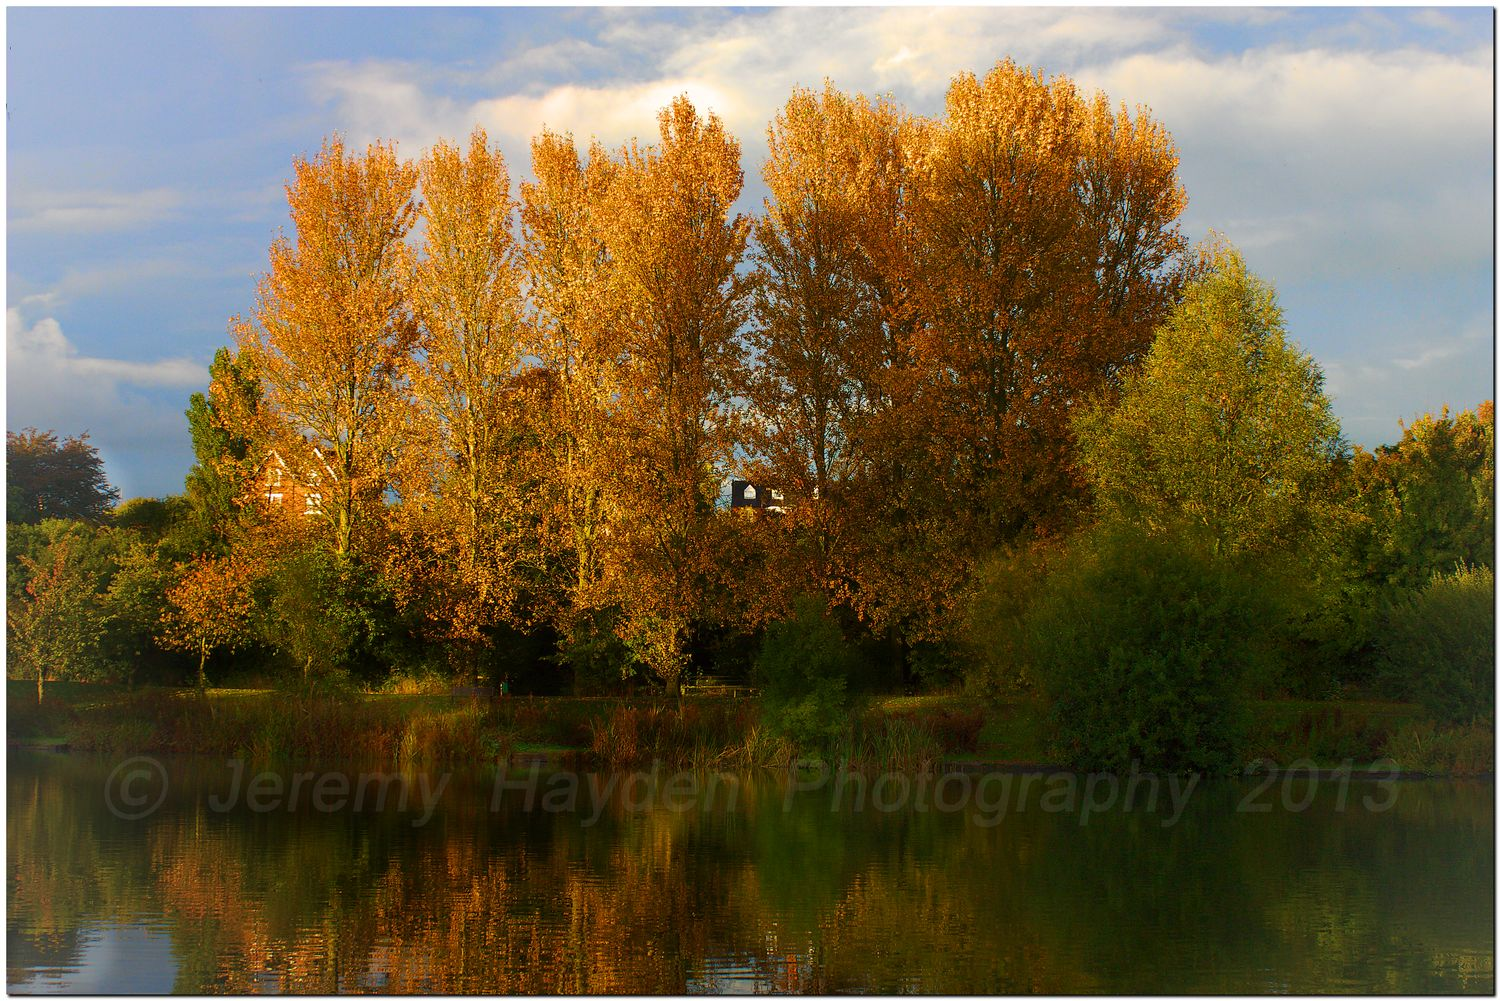 Golden autumn leaves on the trees catching the sunset